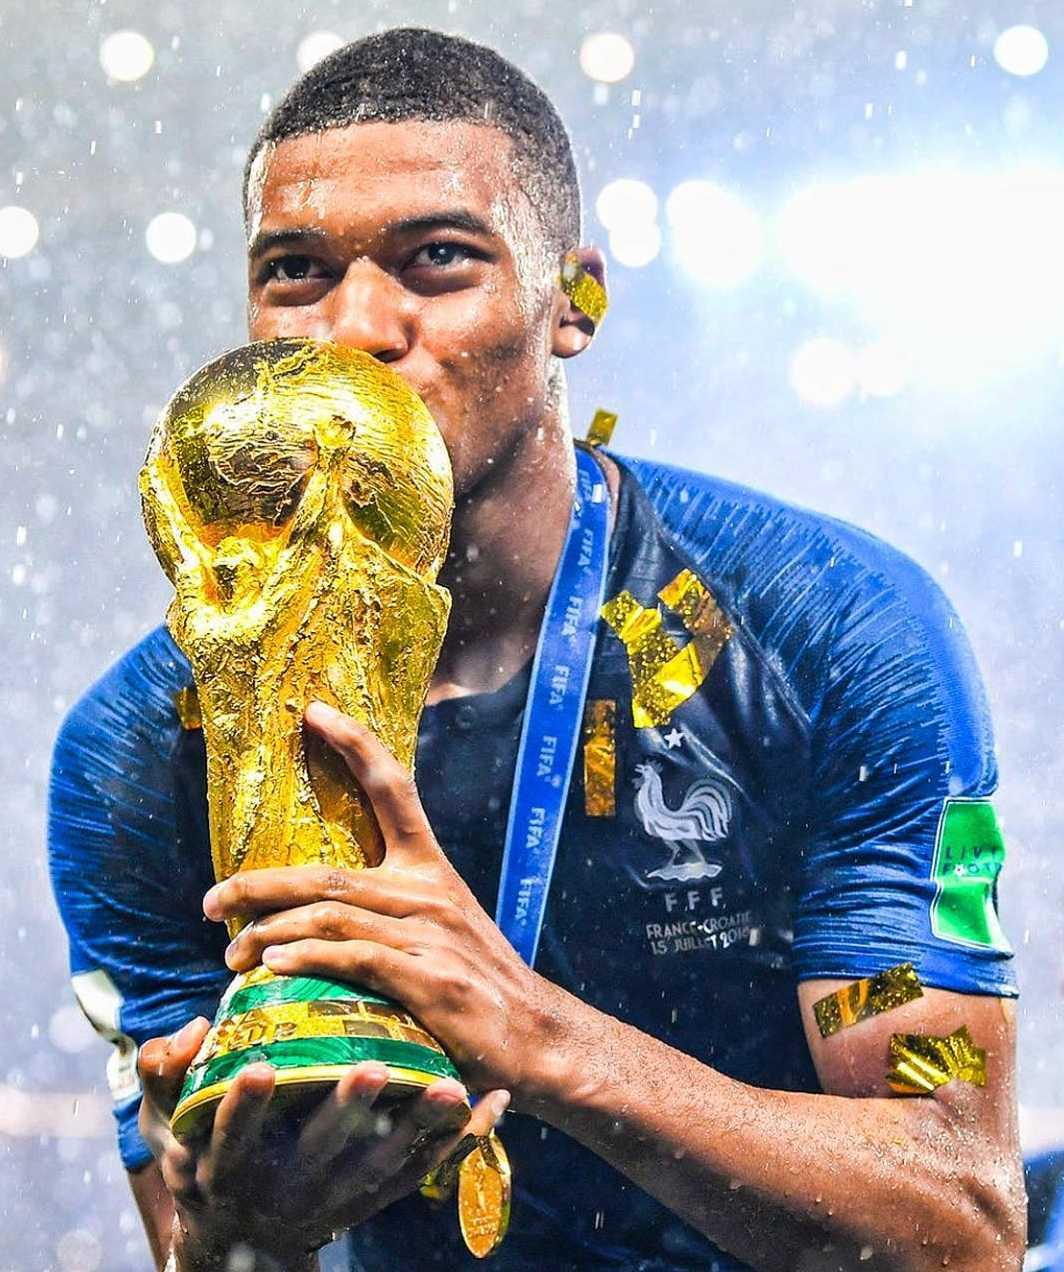 Kylian Mbappe Honor